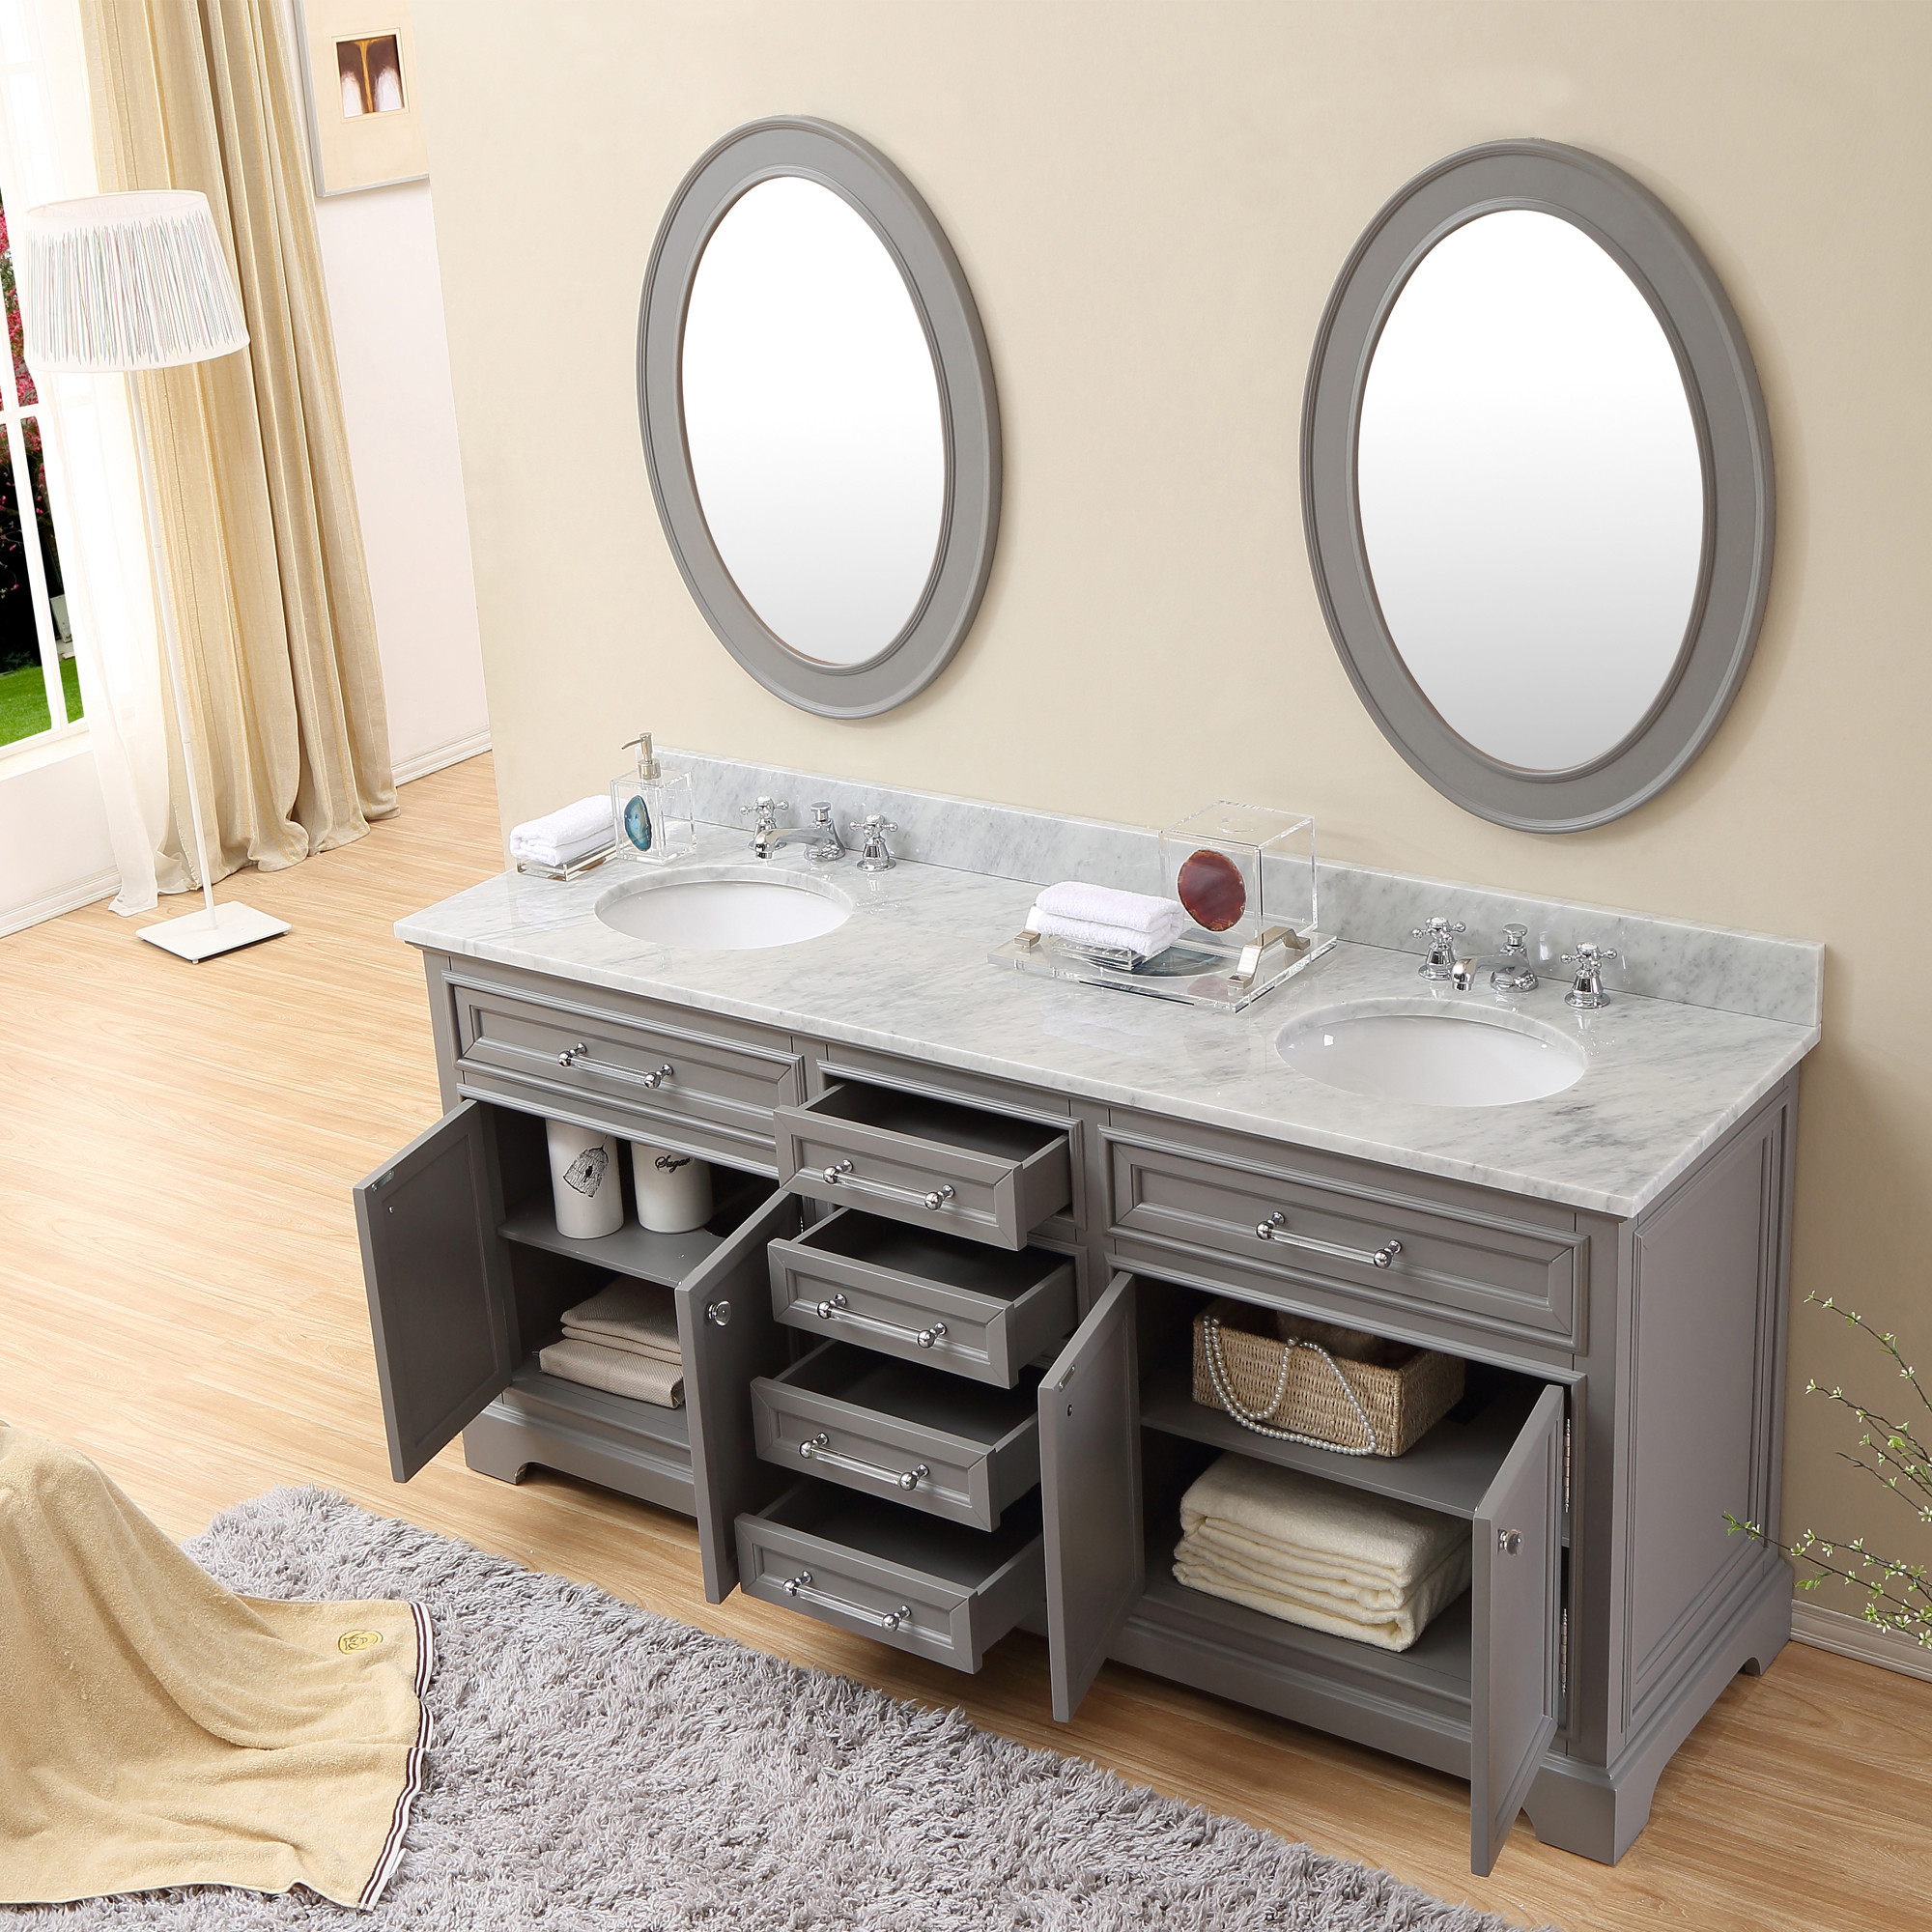 Carenton 60 inch Traditional Double Sink Bathroom Vanity Gray Finish